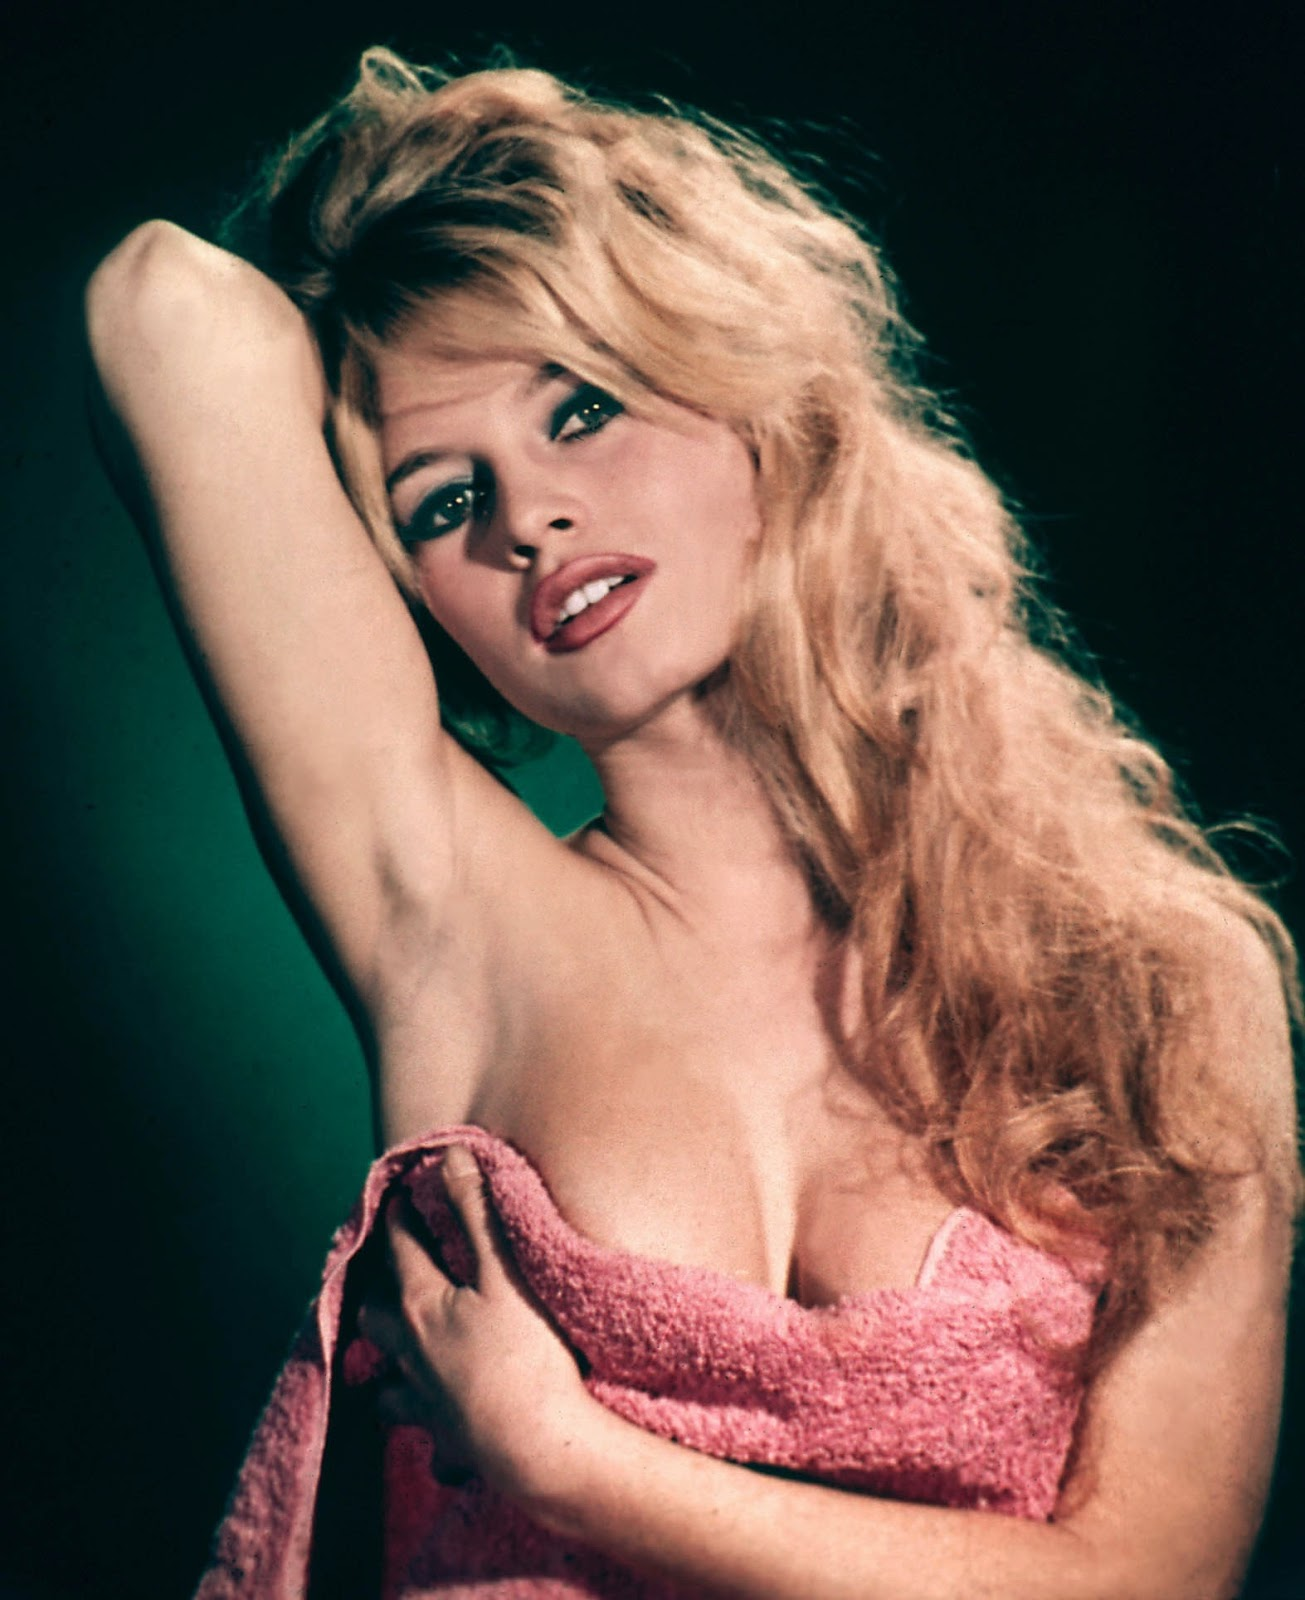 mahound's paradise: brigitte bardot on trial once again for